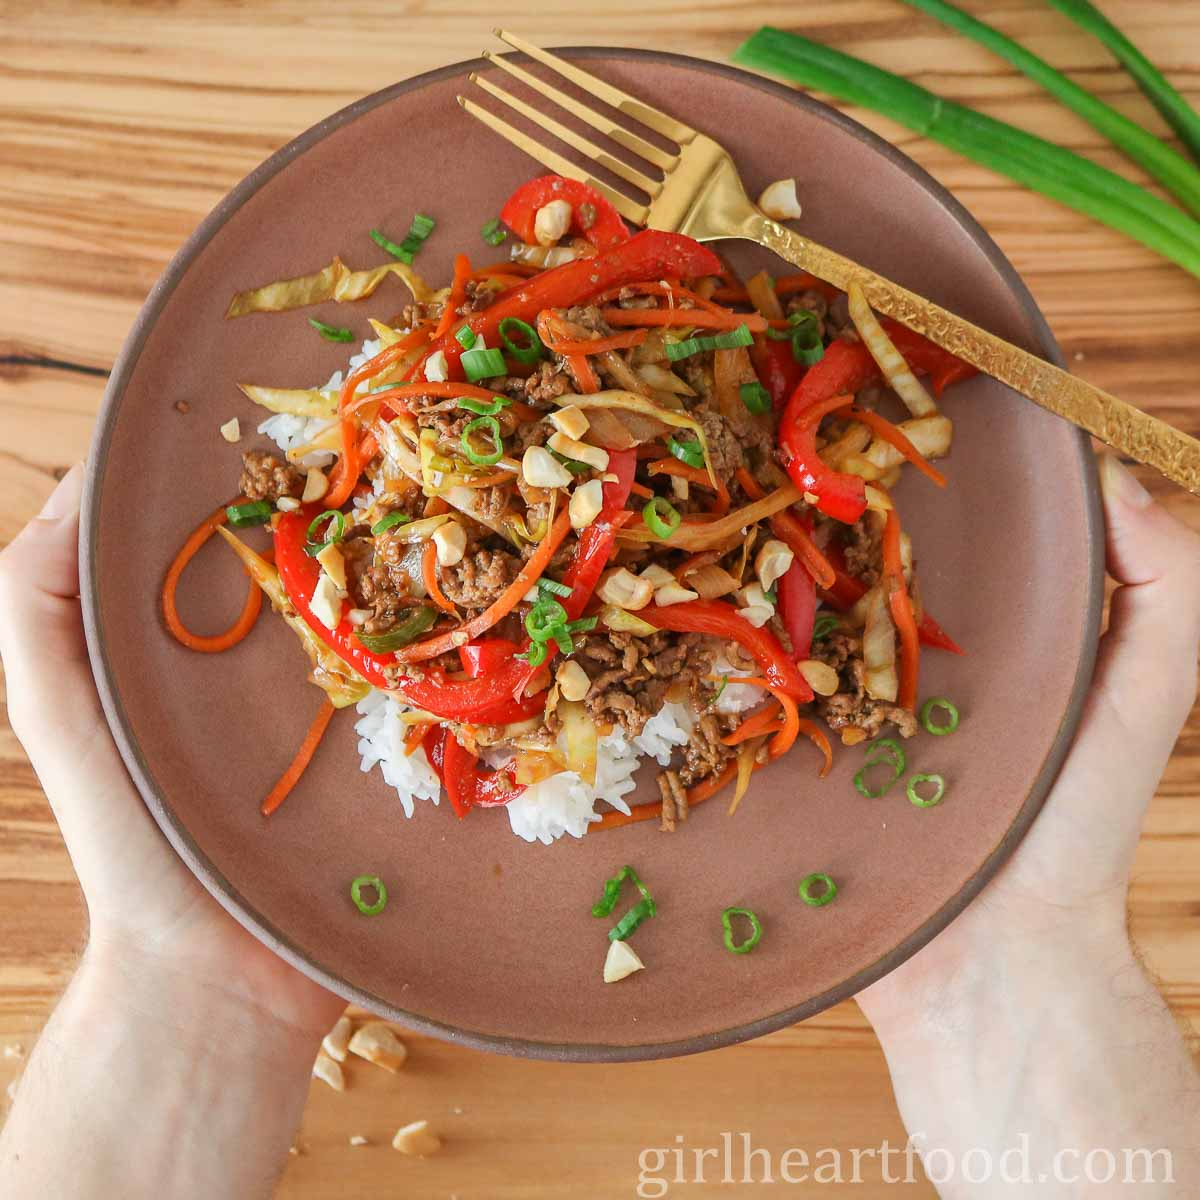 Two hands holding a plate of ground beef stir-fry and rice.